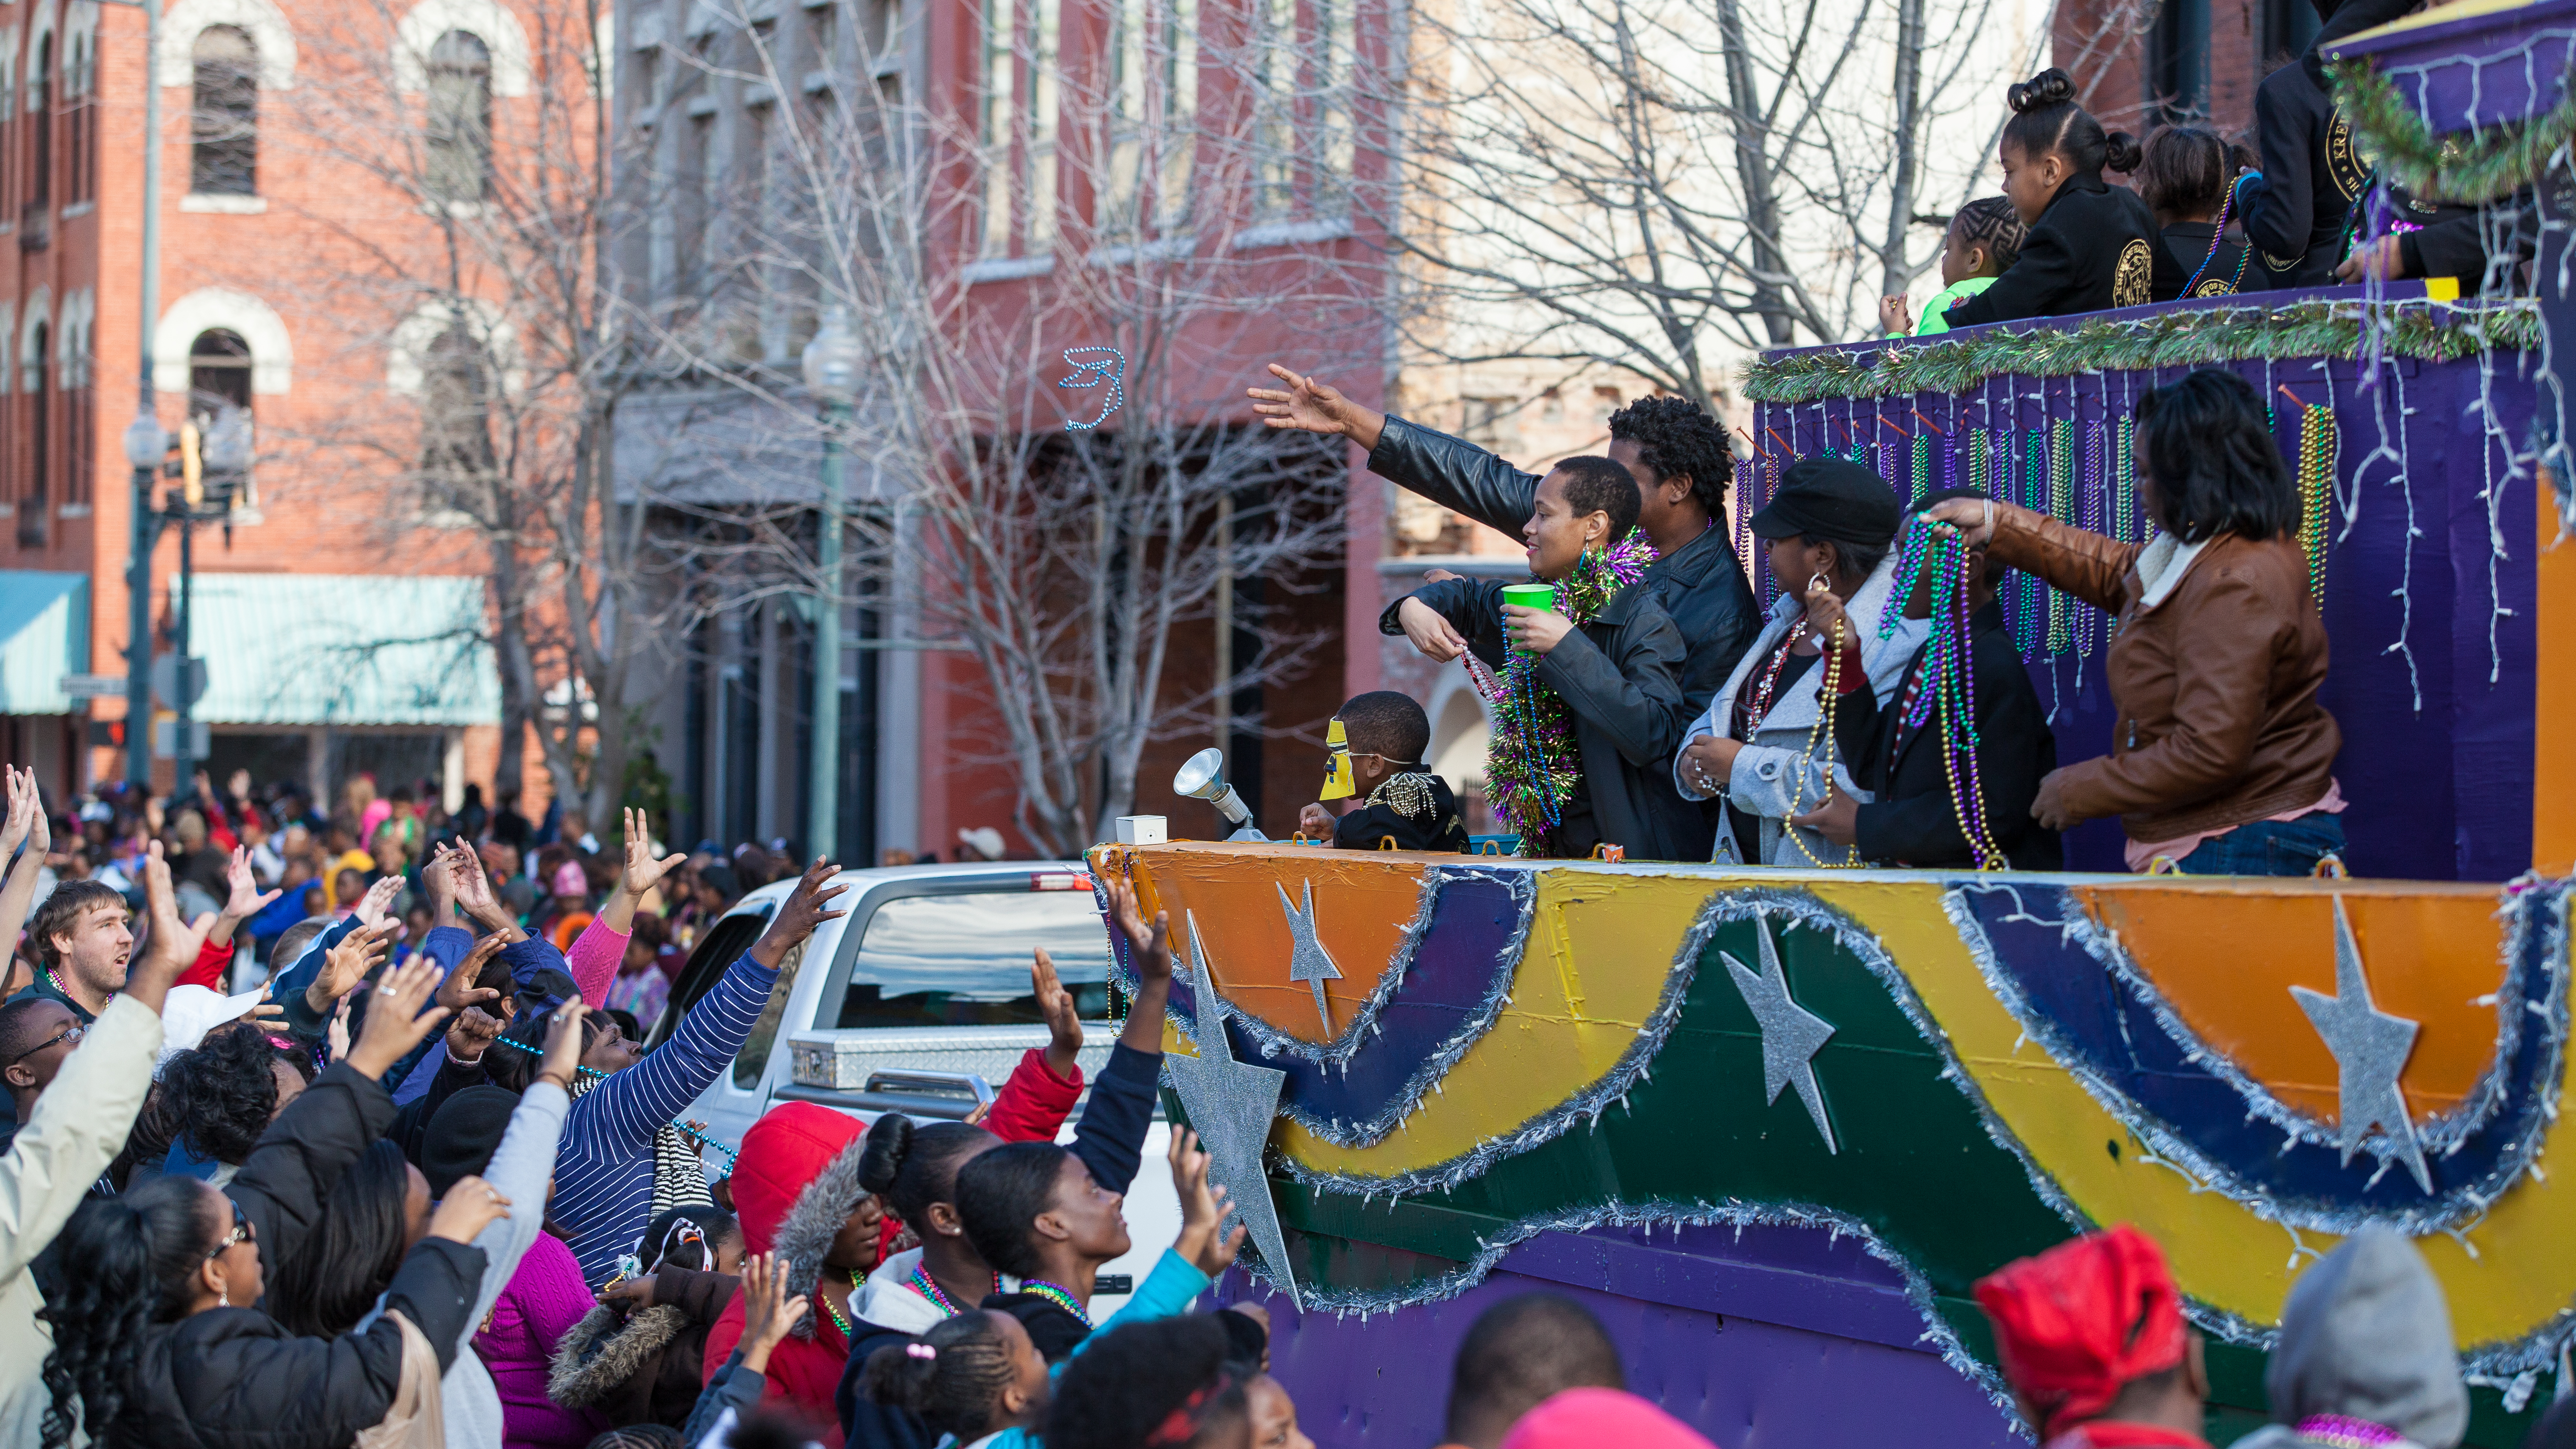 New Orleans keeps Mardi Gras beads out of storm drains with new initiatives